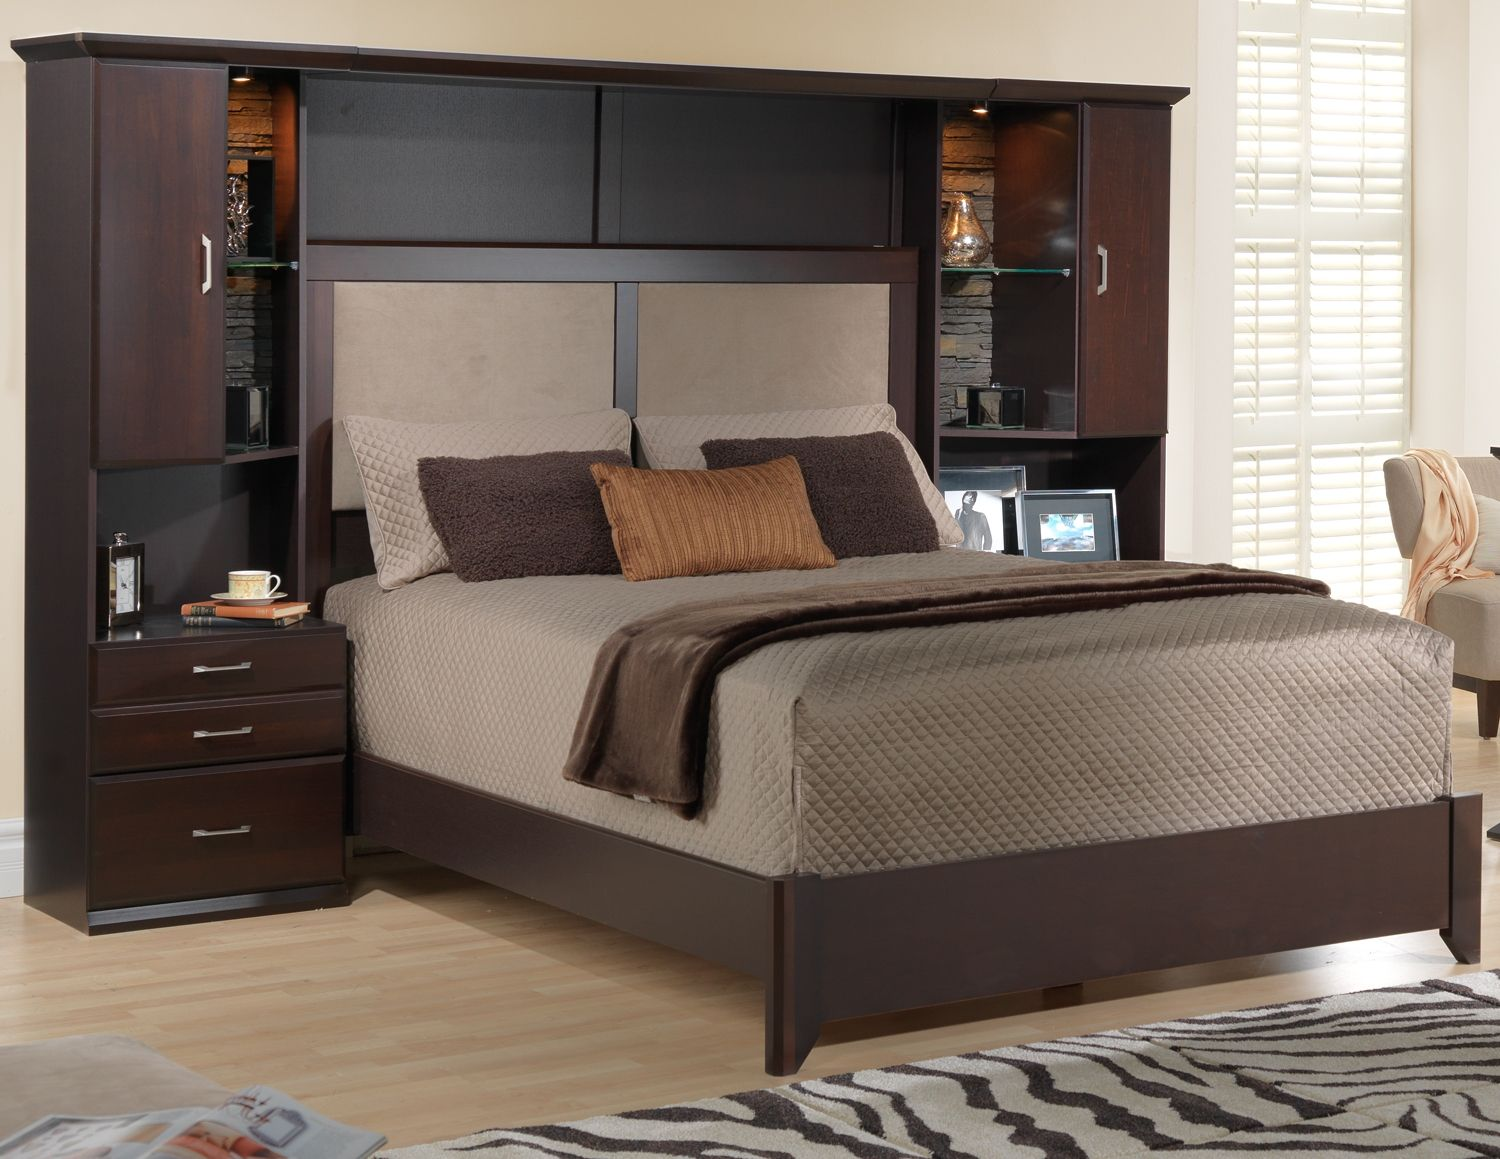 Wall Bed With Sofa Canada Dfs Sofia Corner Reviews Sherwood Bedroom 6 Pc Queen Package Leon 39s